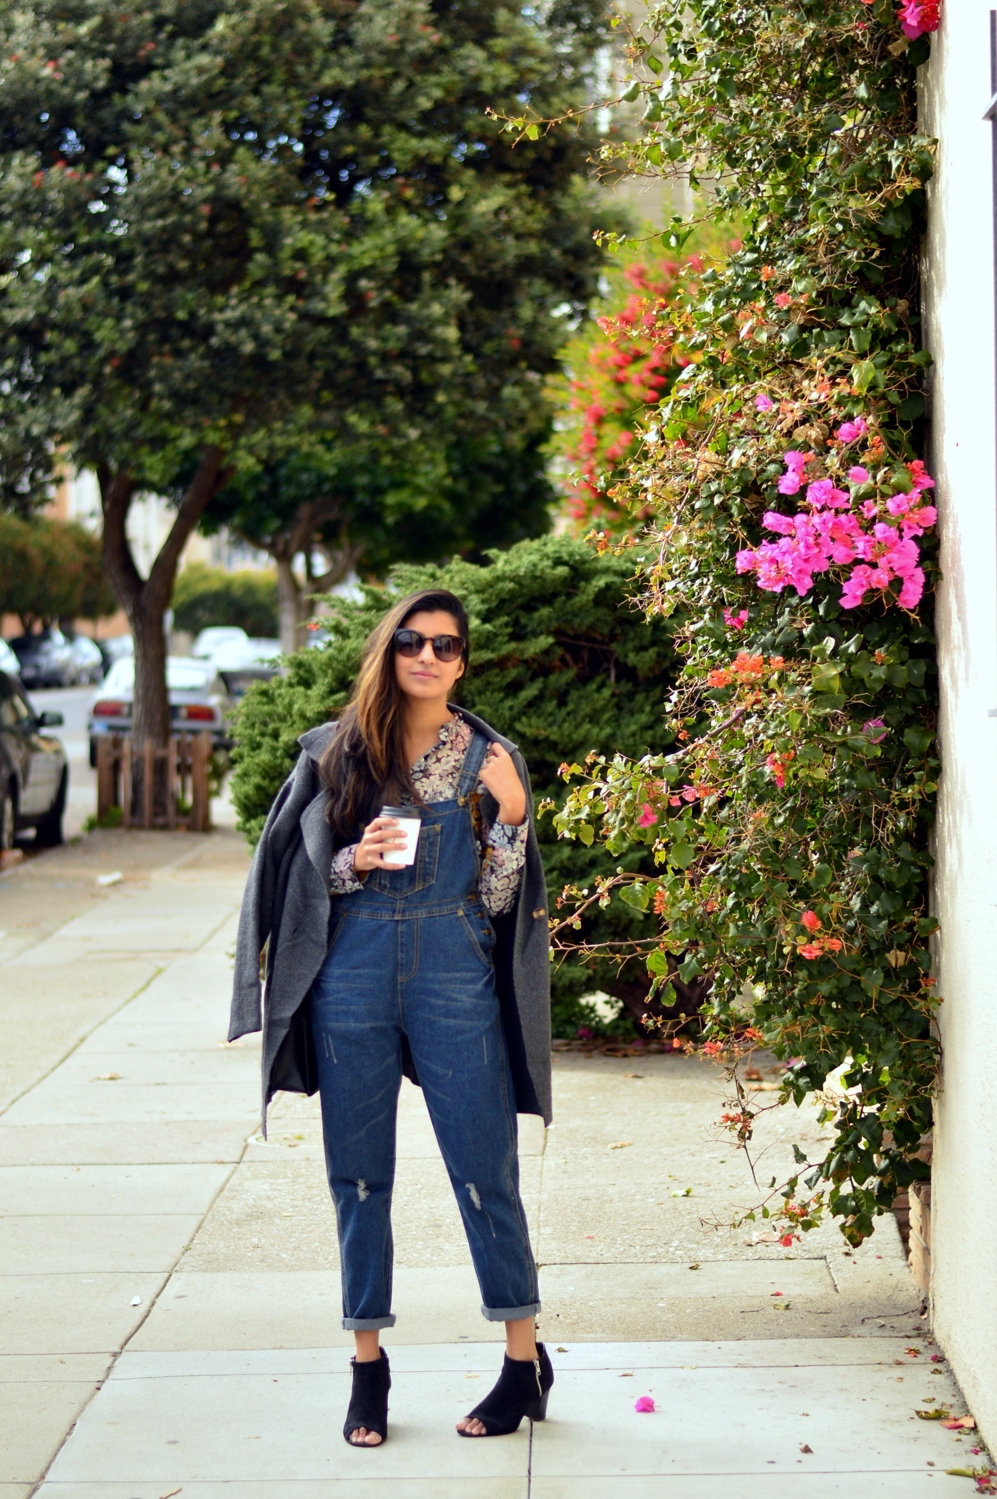 boyfriend-overalls-floral-blouse-spring-style-bud-stop-san-francisco-blogger-outfit 6